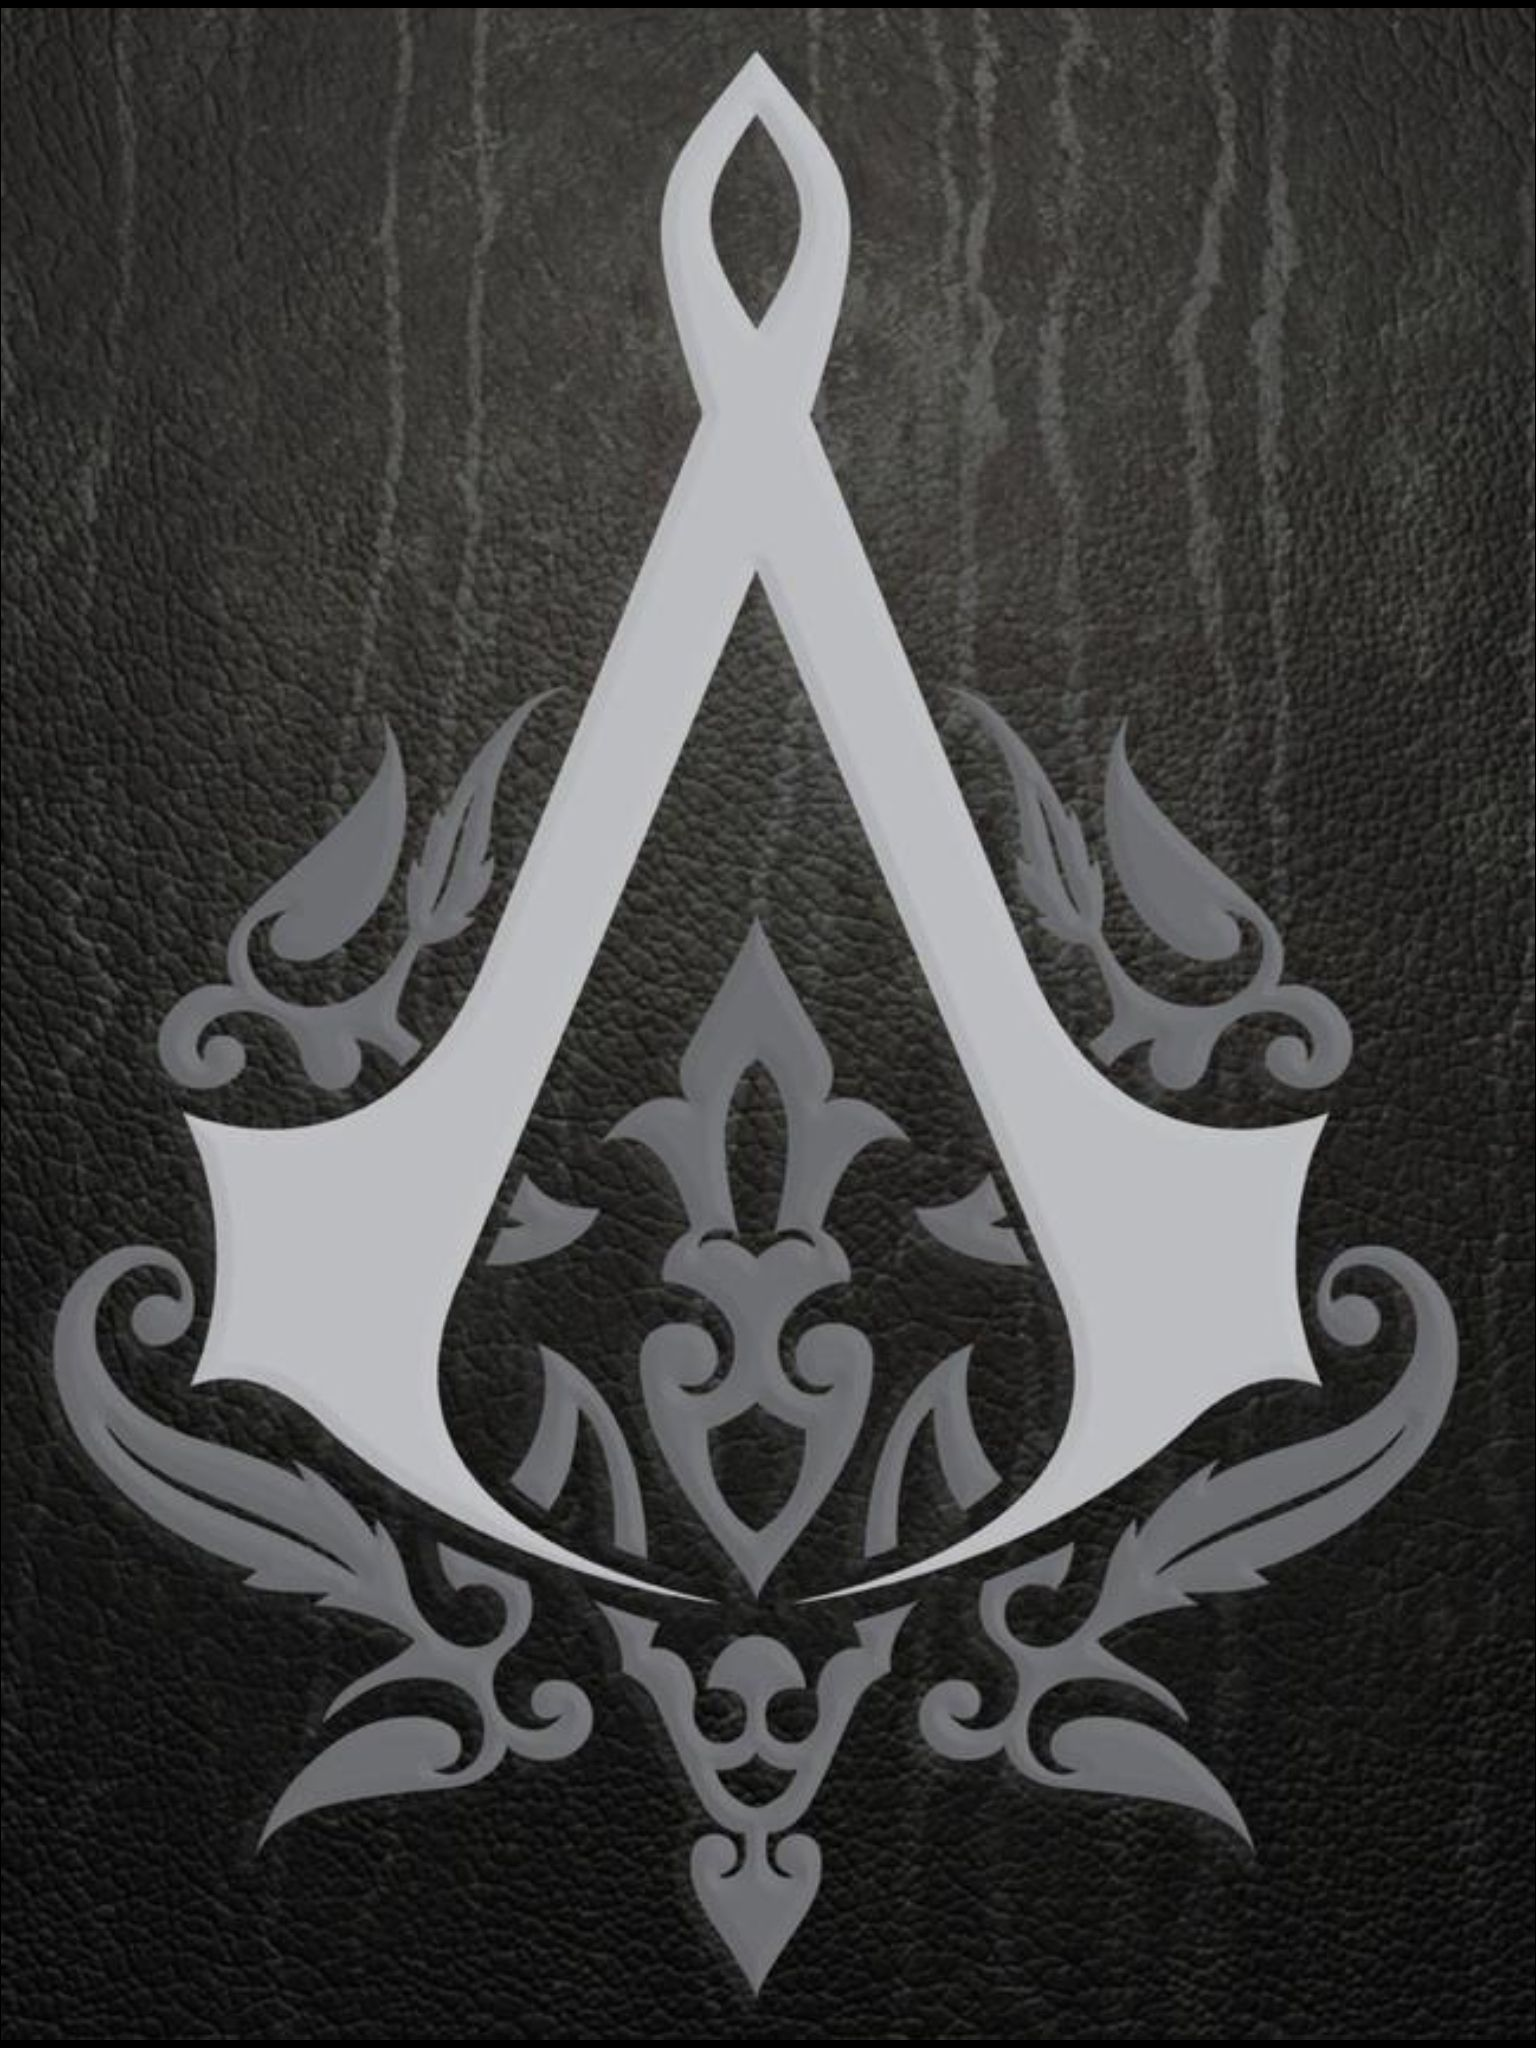 Can't wait to get this done, it's the assassin creed ...